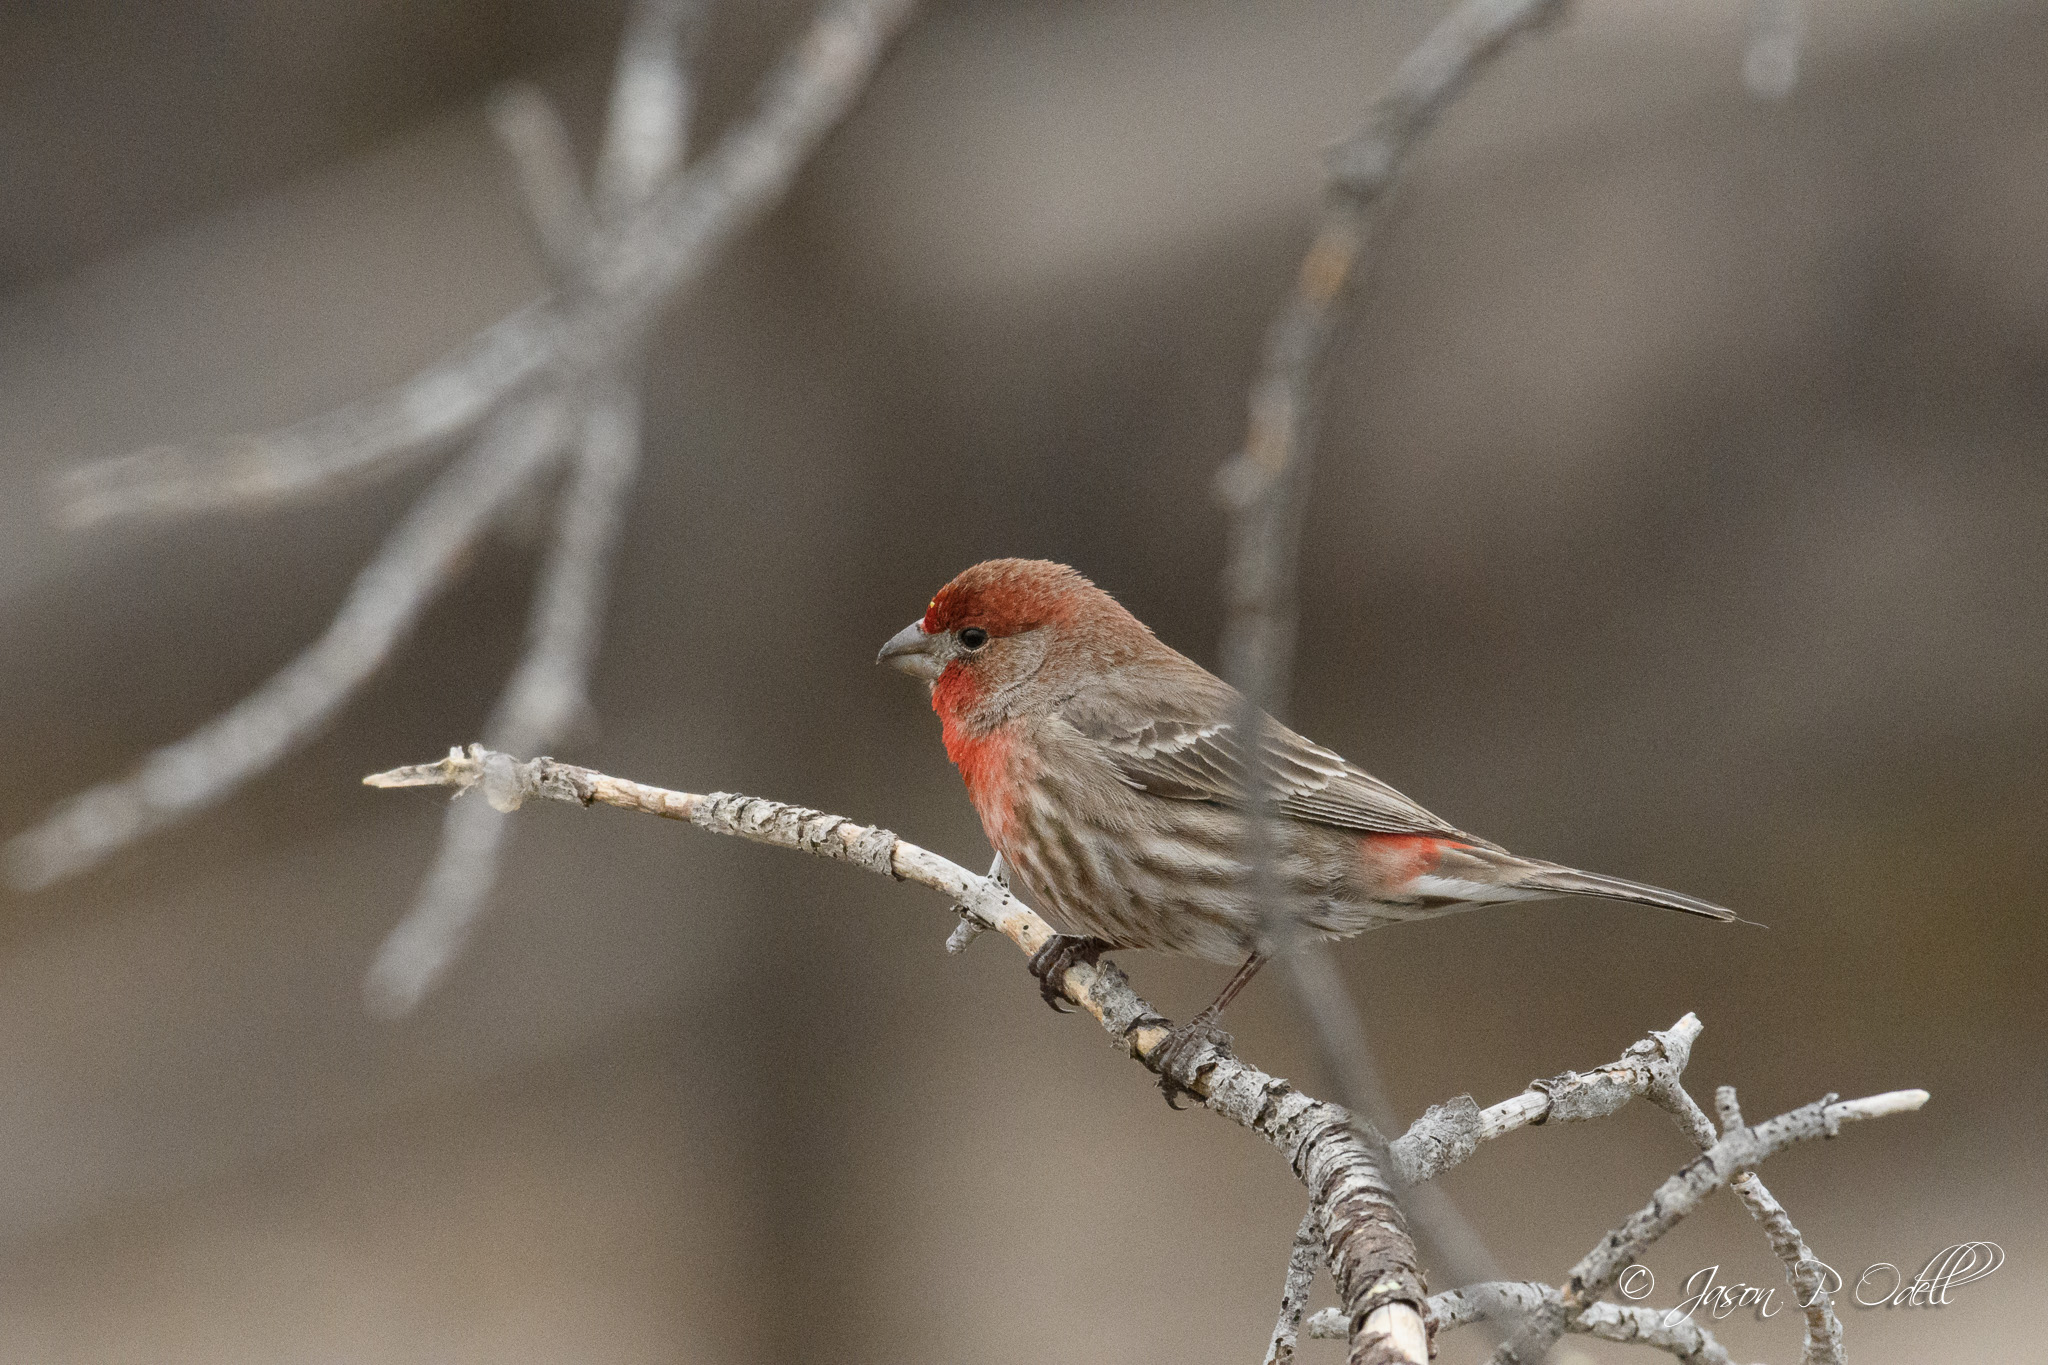 House finch, Fountain, CO Nikon D500 with 200-500mm f/5.6 Nikkor and TC-14EIII using 1.3x crop mode (effective FL: 1400mm) 1/2000s f/11 ISO 5600 (Click to see a larger version)